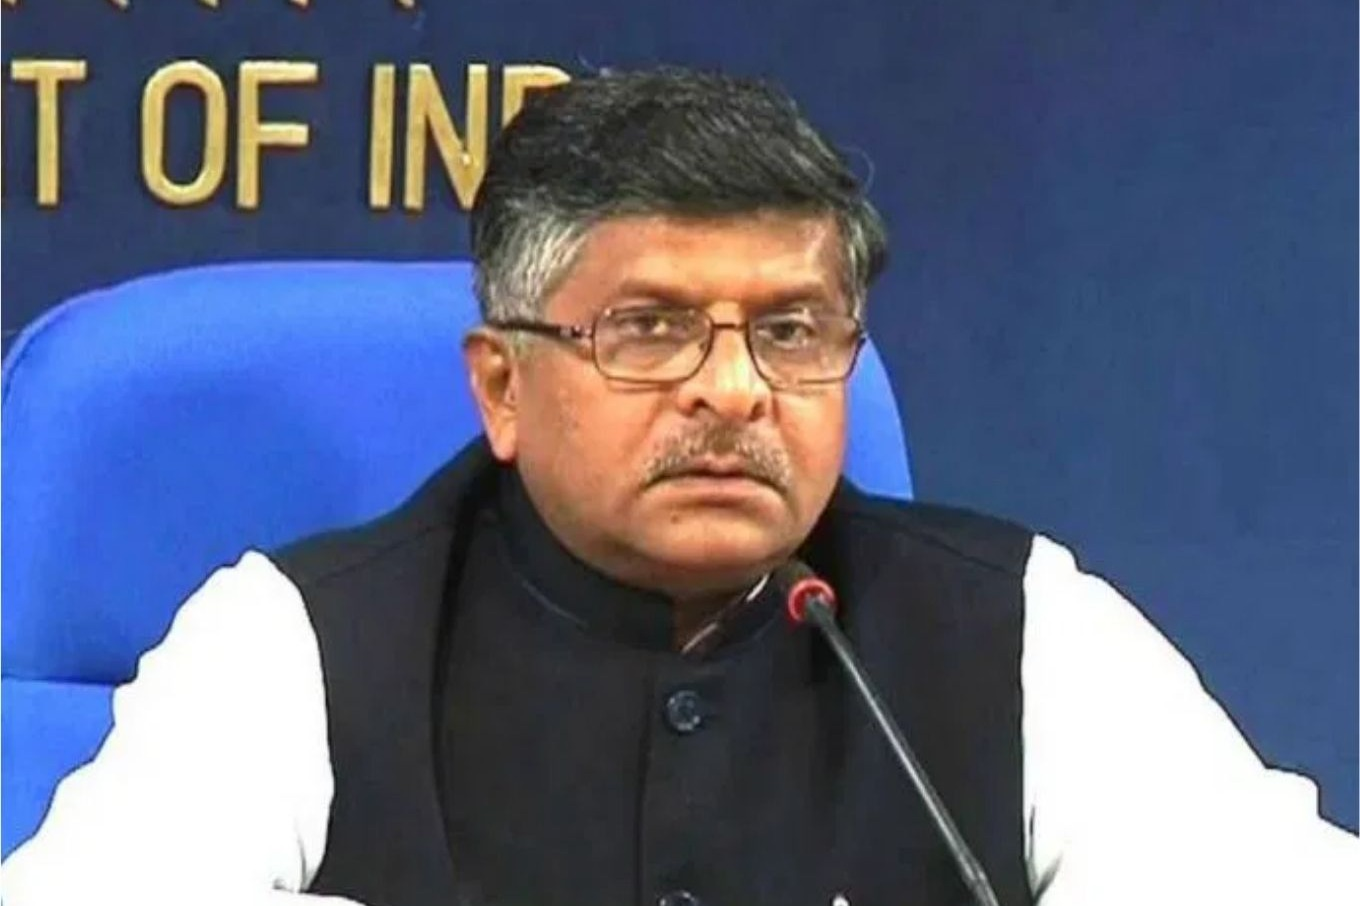 We Lost 20 Jawans Toll Double On Chinese Side Says Minister Ravi Shankar Prasad